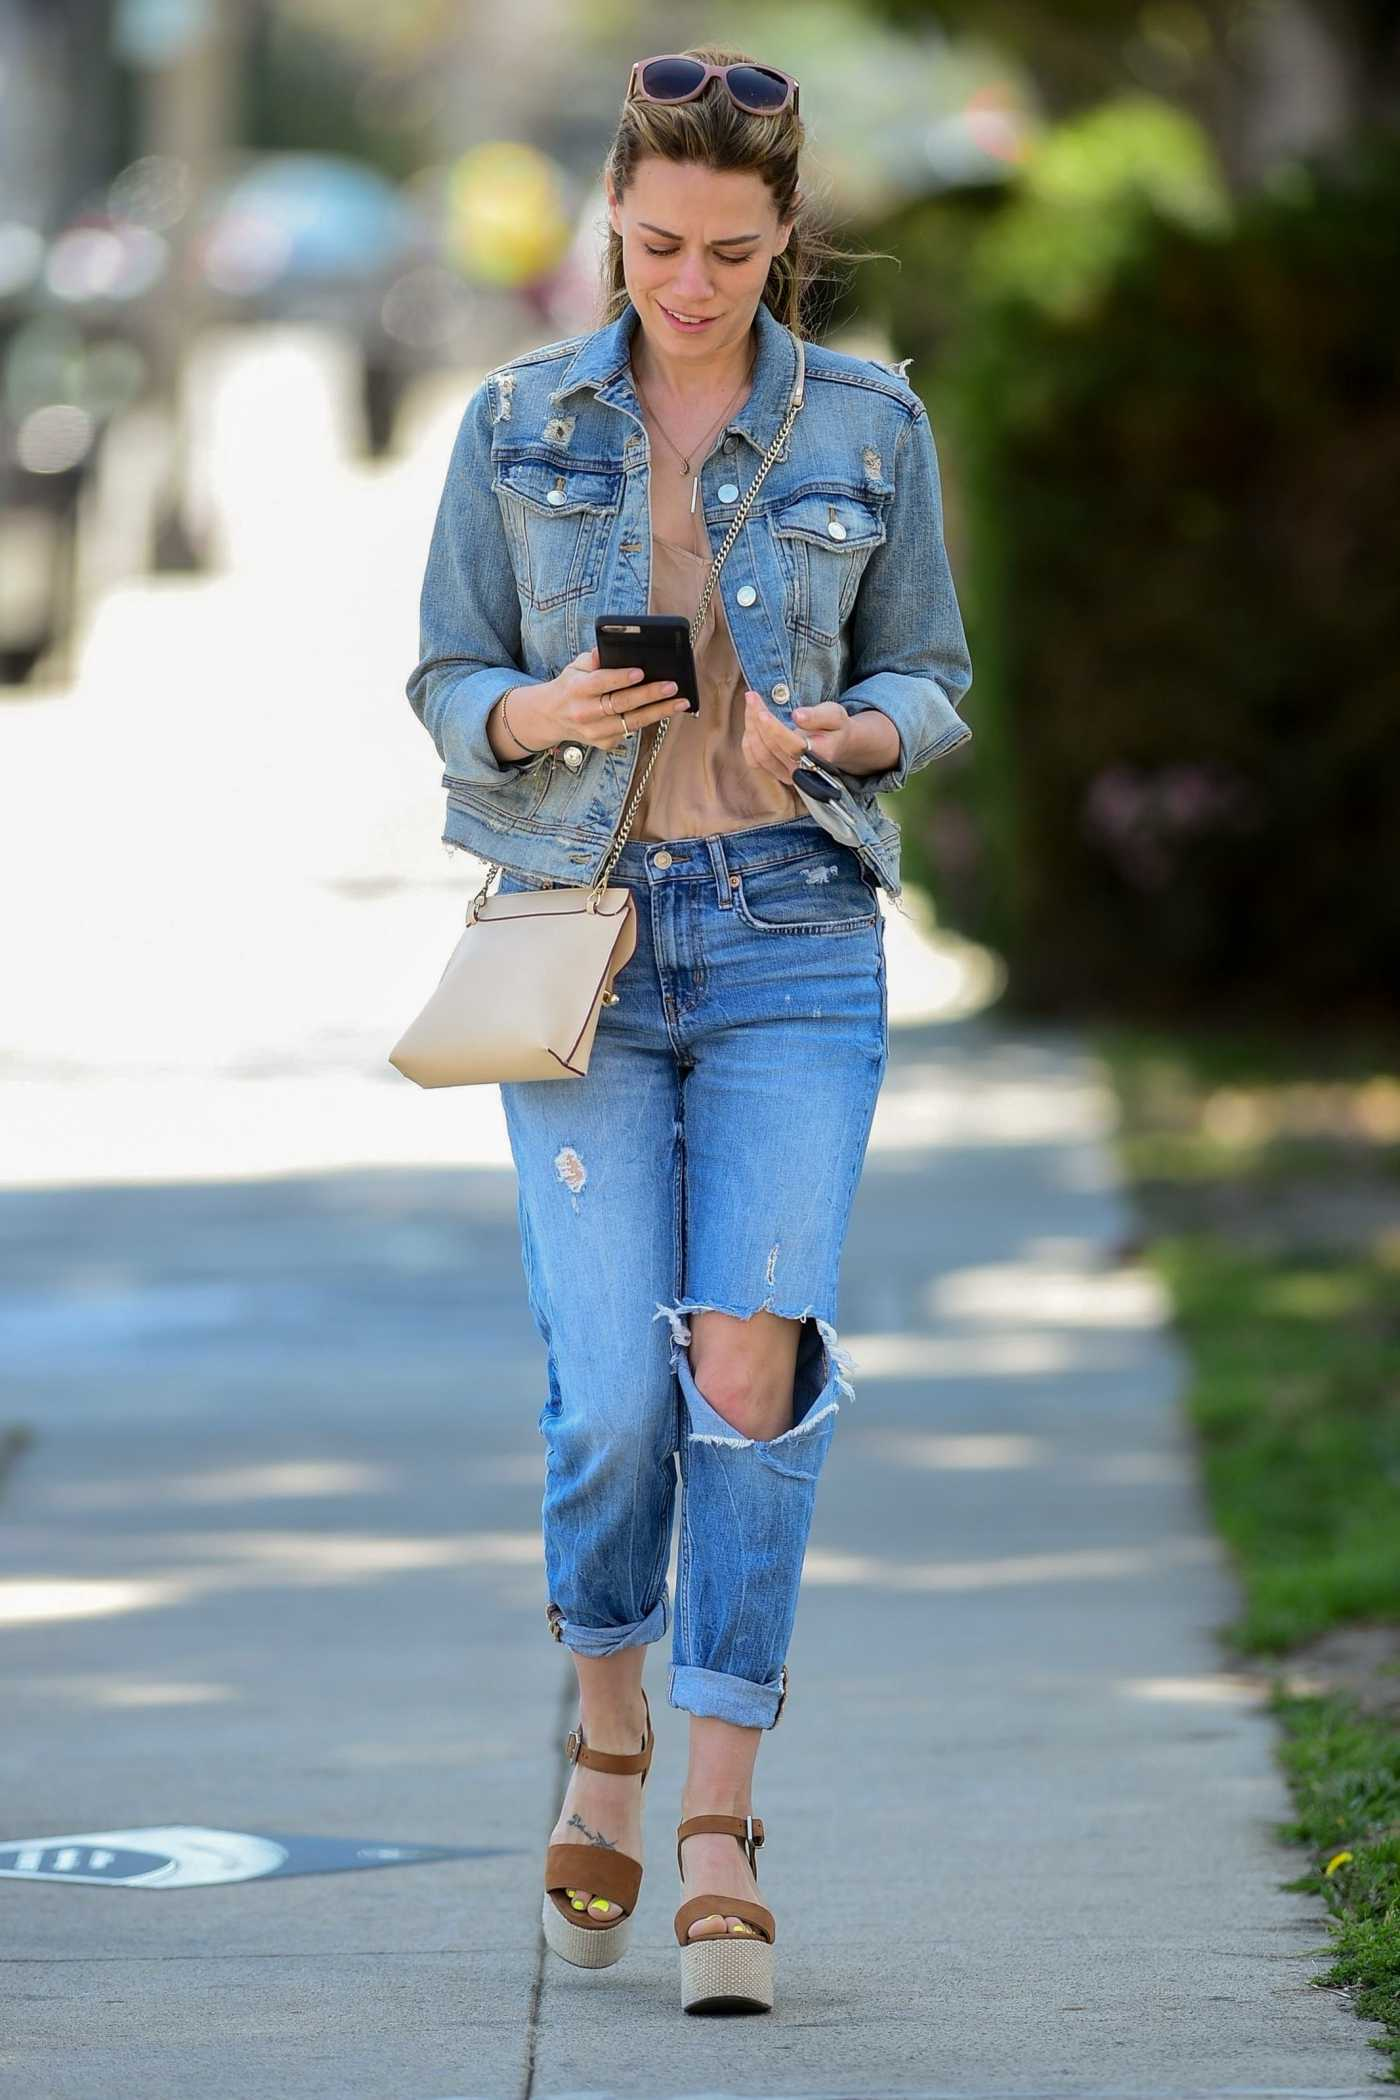 Bethany Joy Lenz in a Blue Ripped Jeans Was Seen Out in Los Angeles 04/10/2019